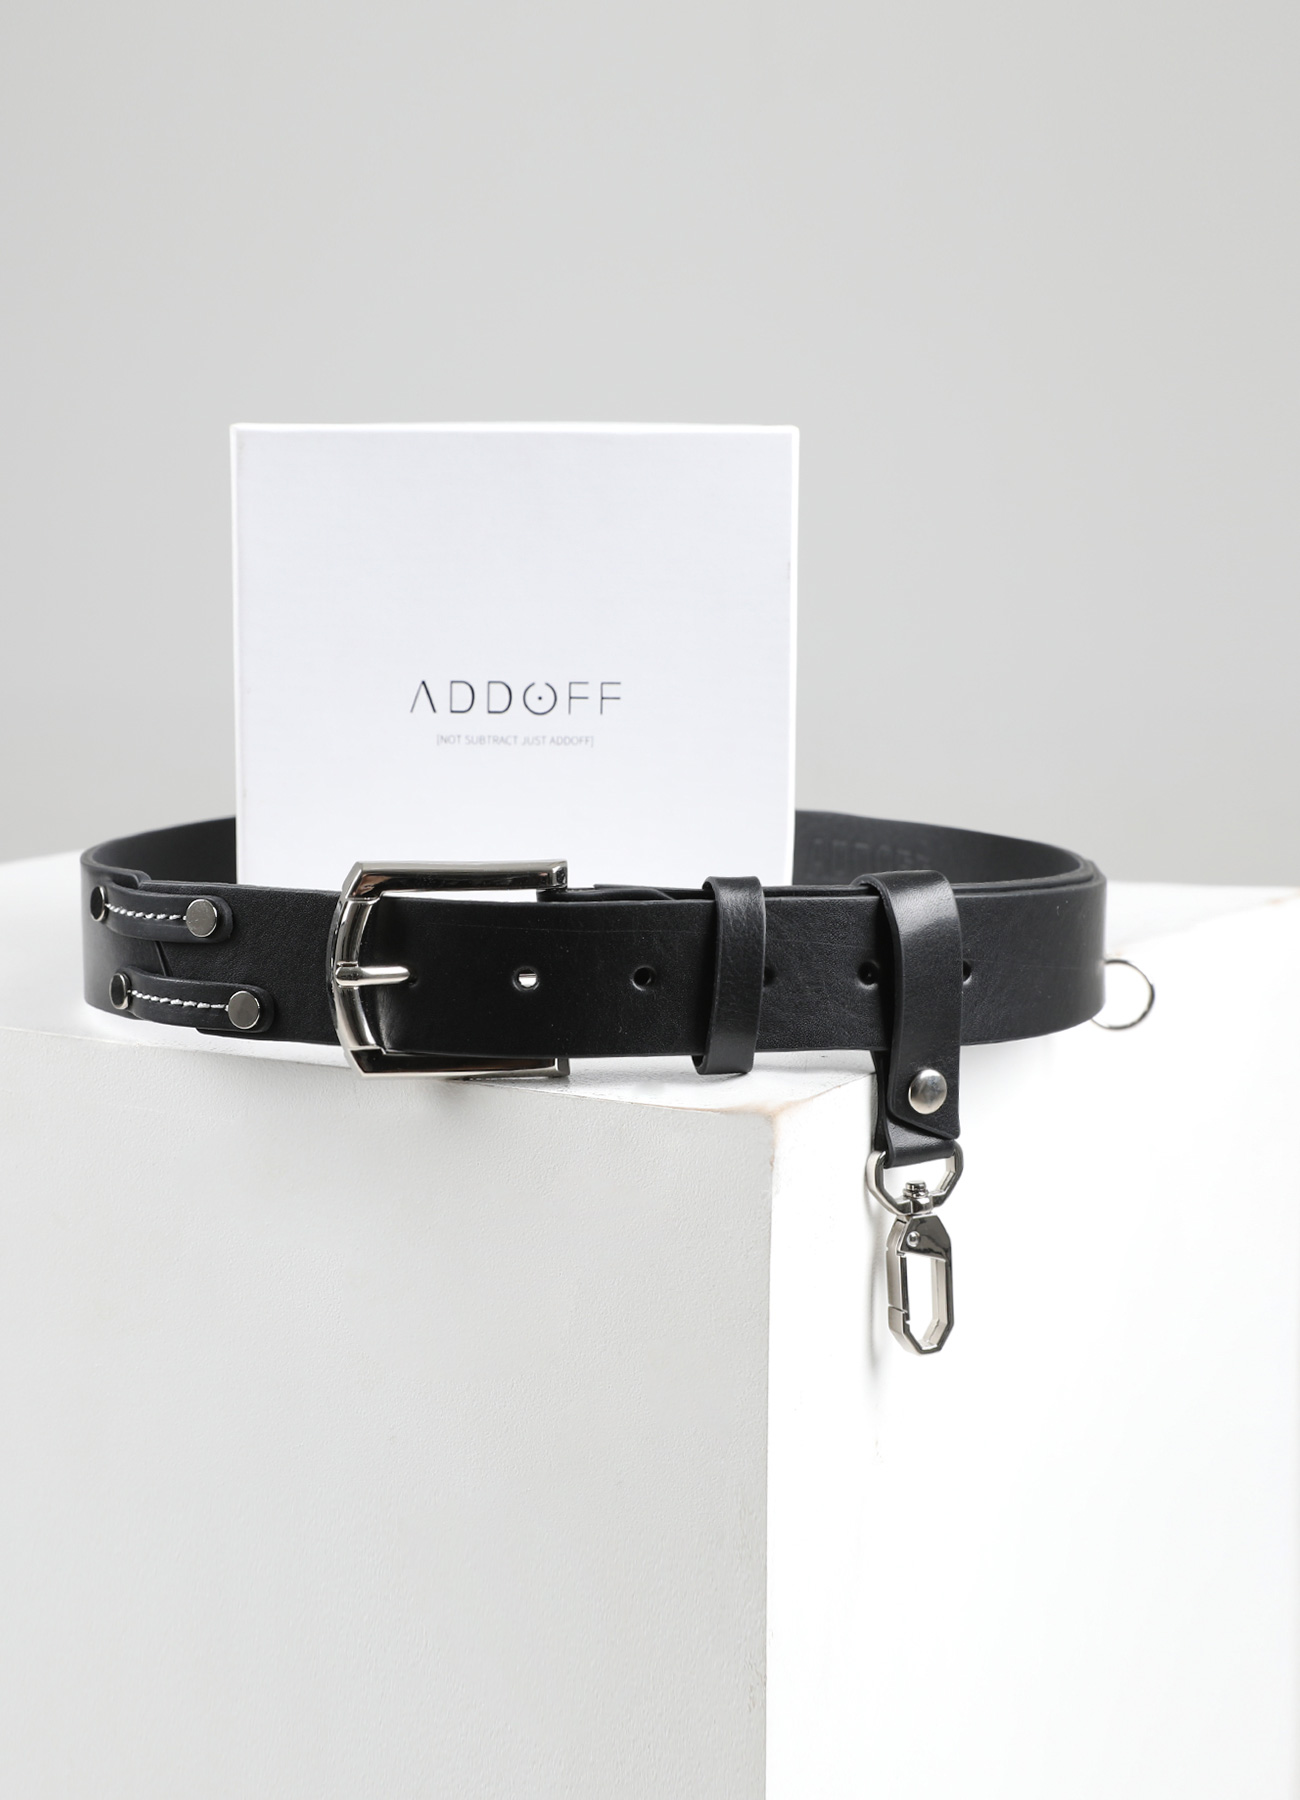 [LLUD Exclusive] Division Stitch belt